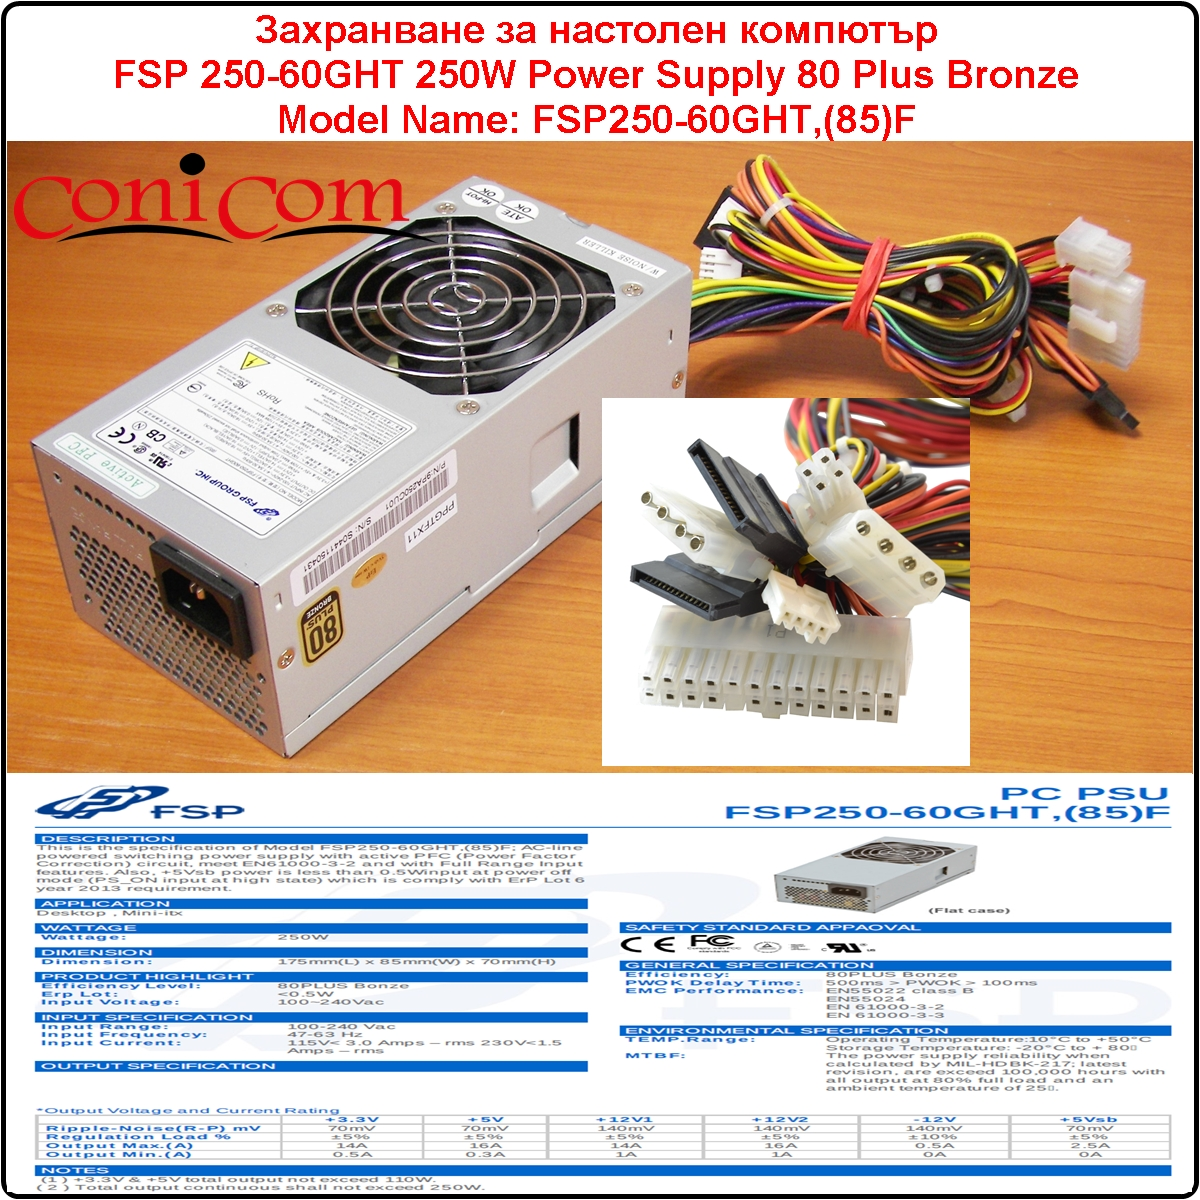 FSP Group - FSP250-60GHT,(85)F (250W)